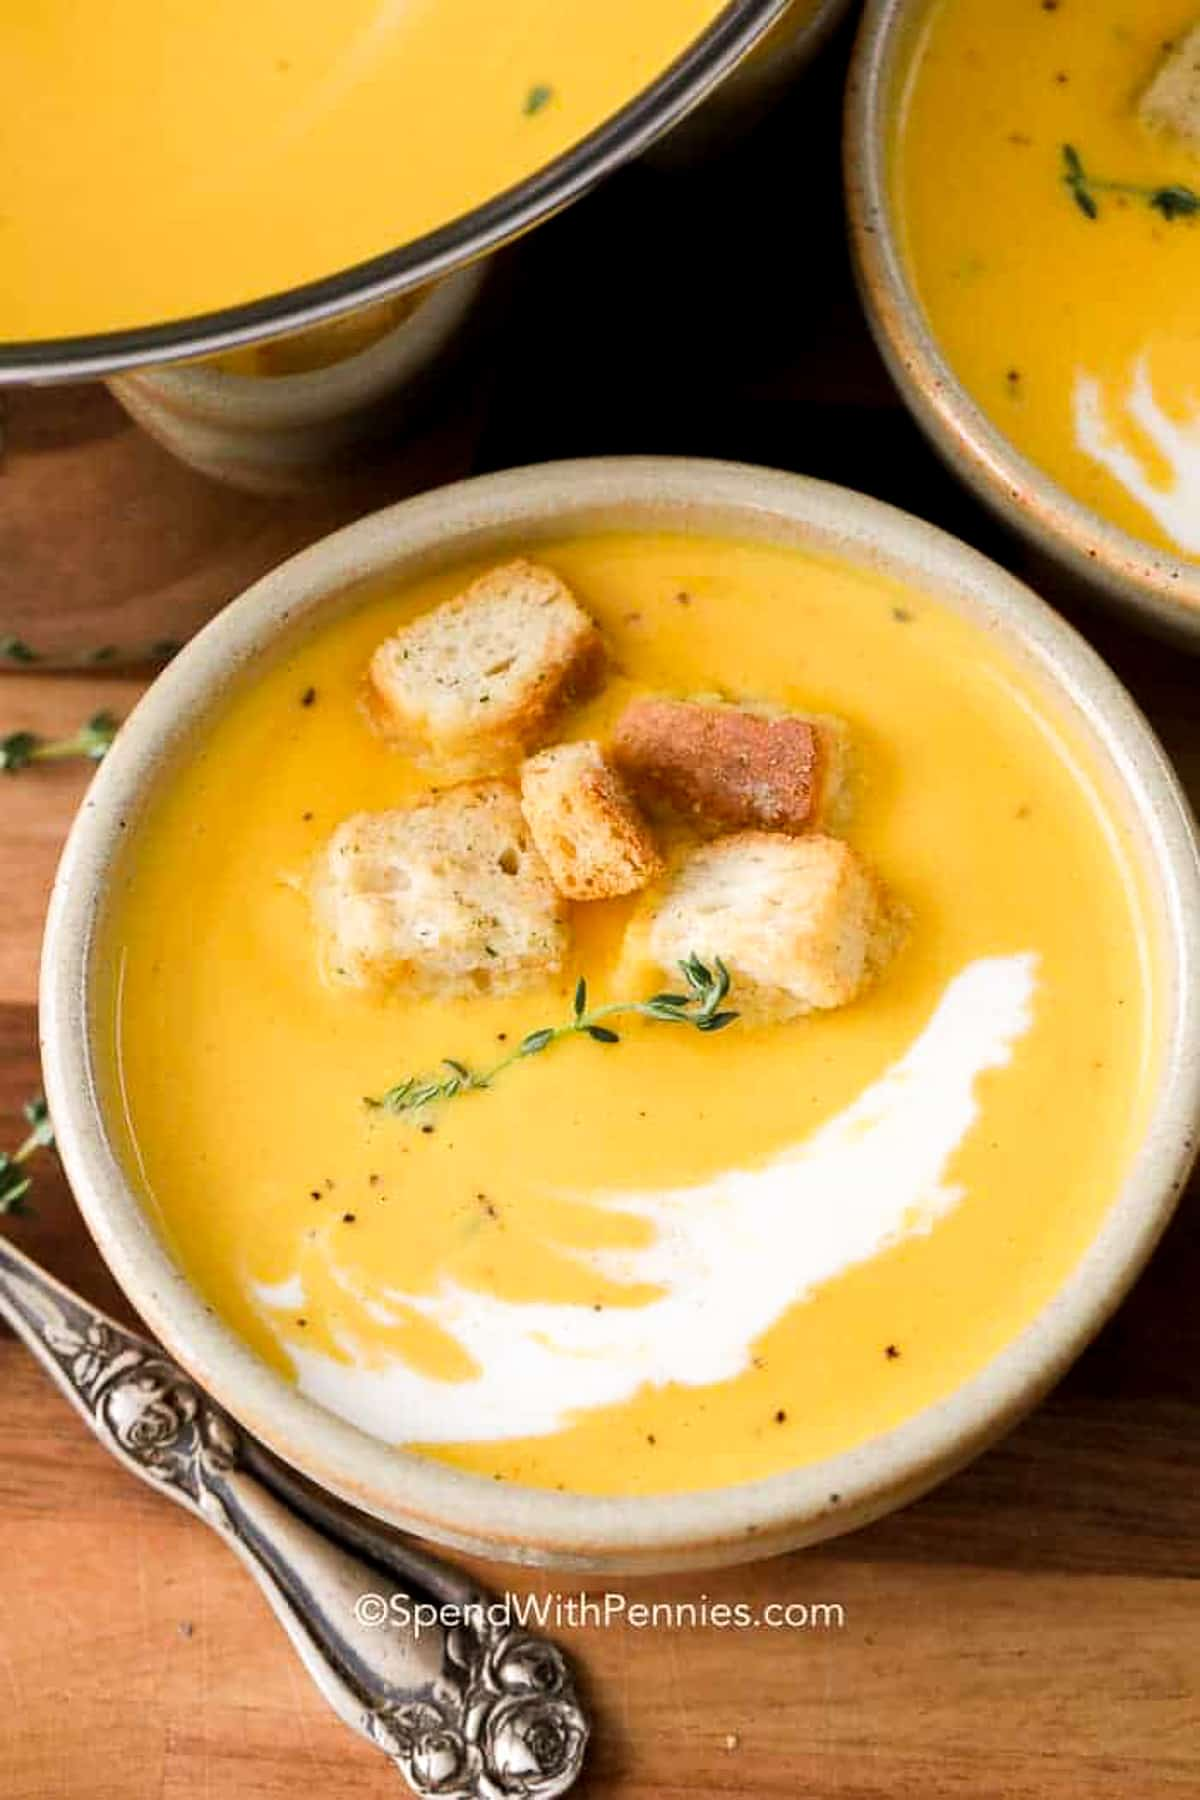 Butternut squash soup with croutons in a bowl